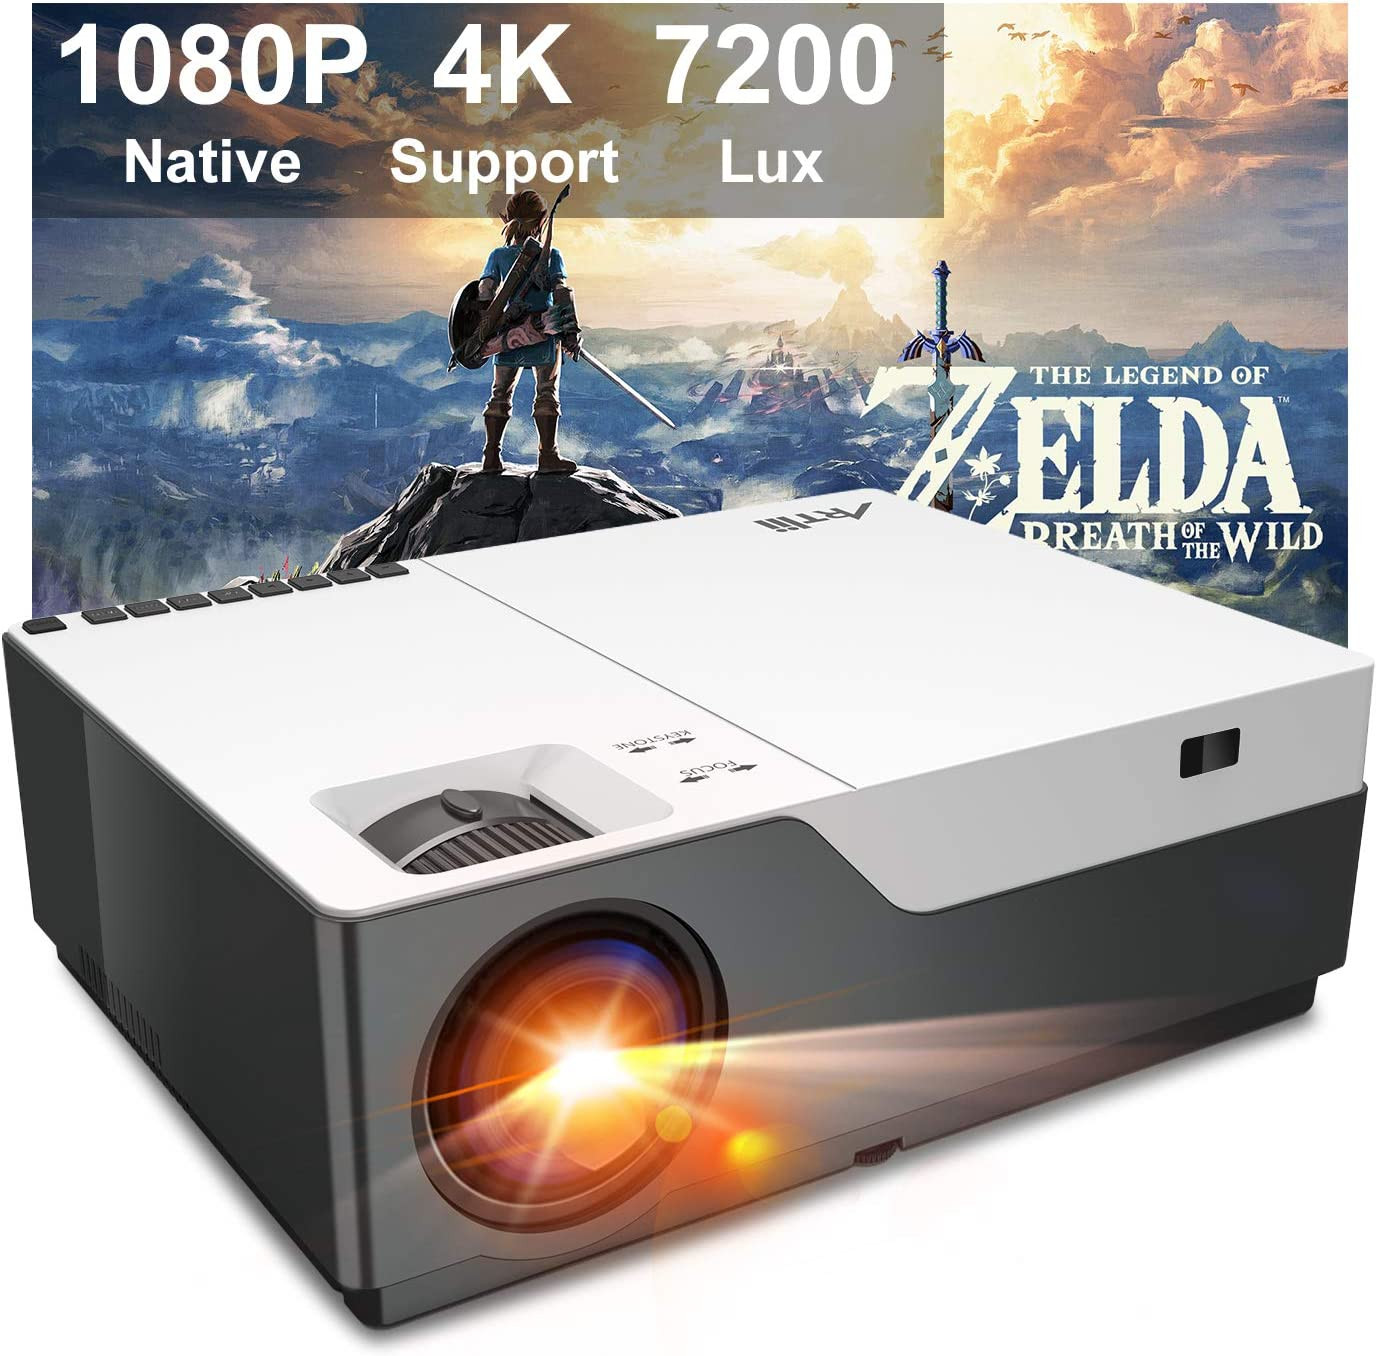 Projector, Artlii Stone Full HD 1080P budget Projector for gaming